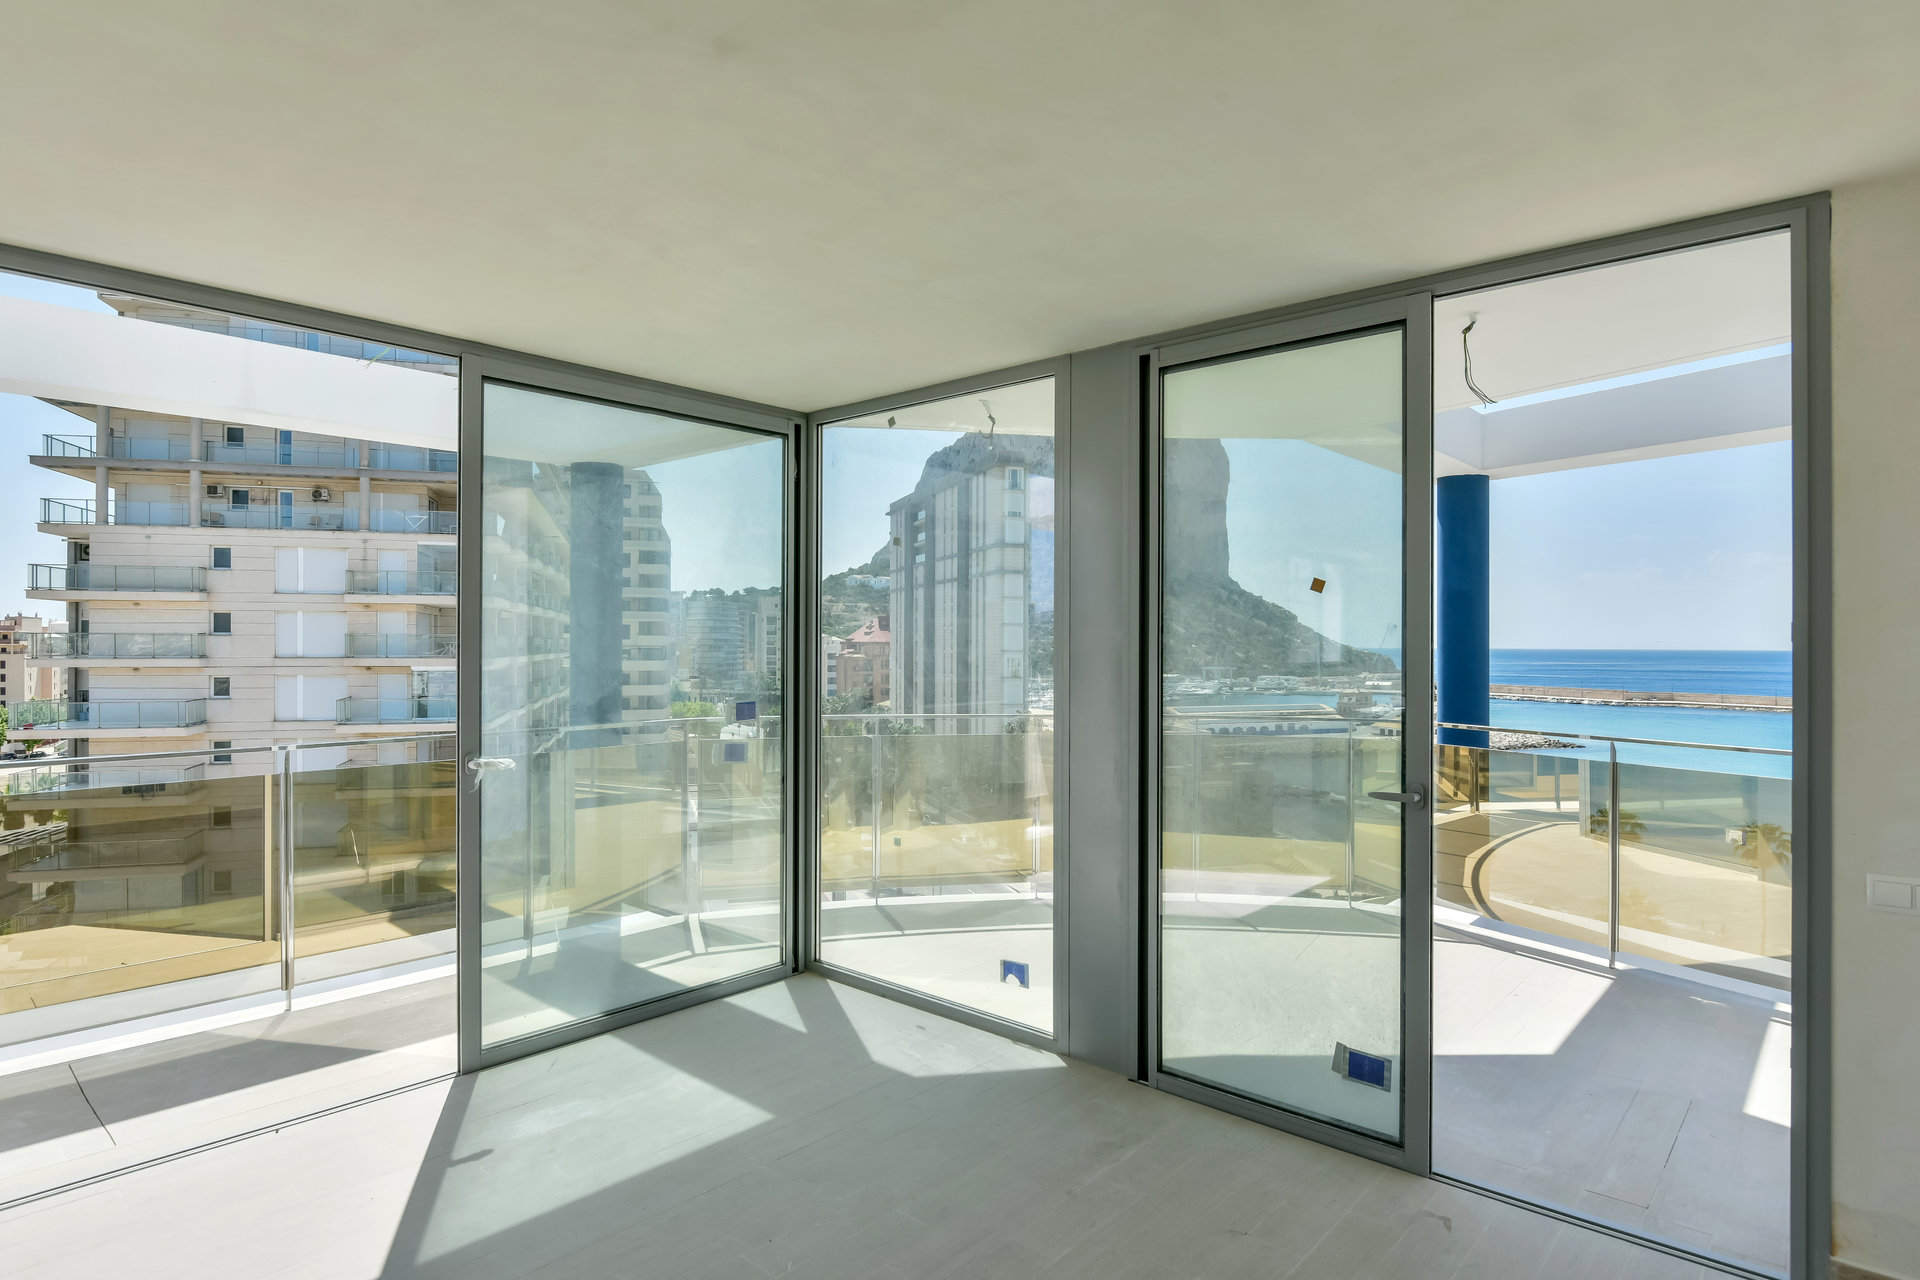 New build triplex-apartment close to the beach in Calpe